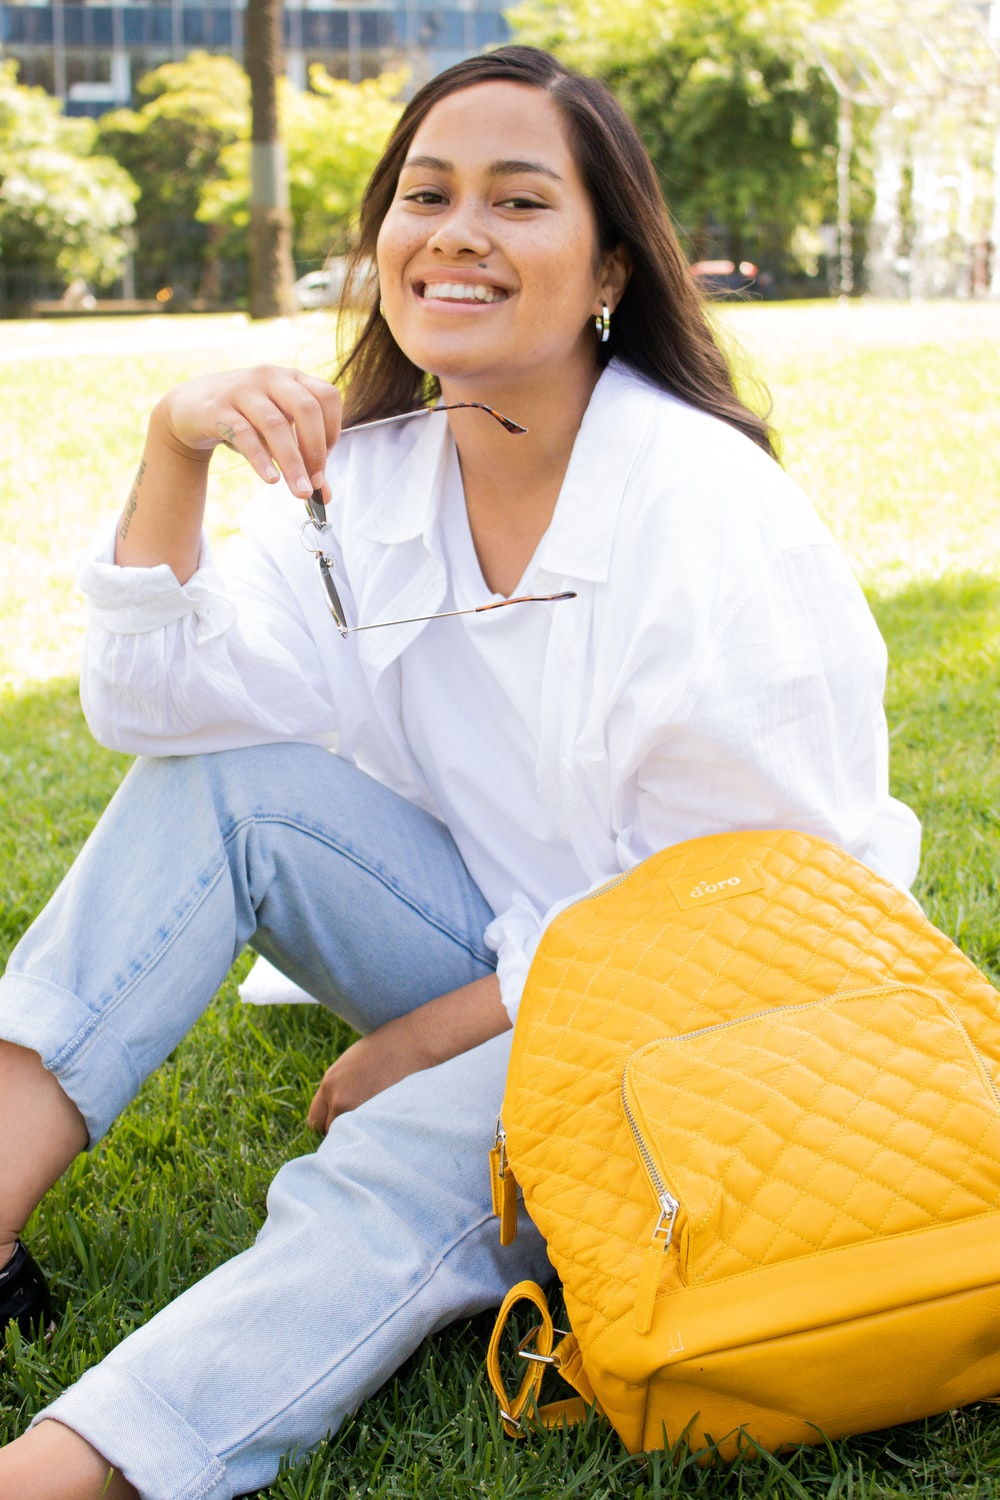 woman in white dress shirt and blue denim jeans sitting on green grass field during daytime